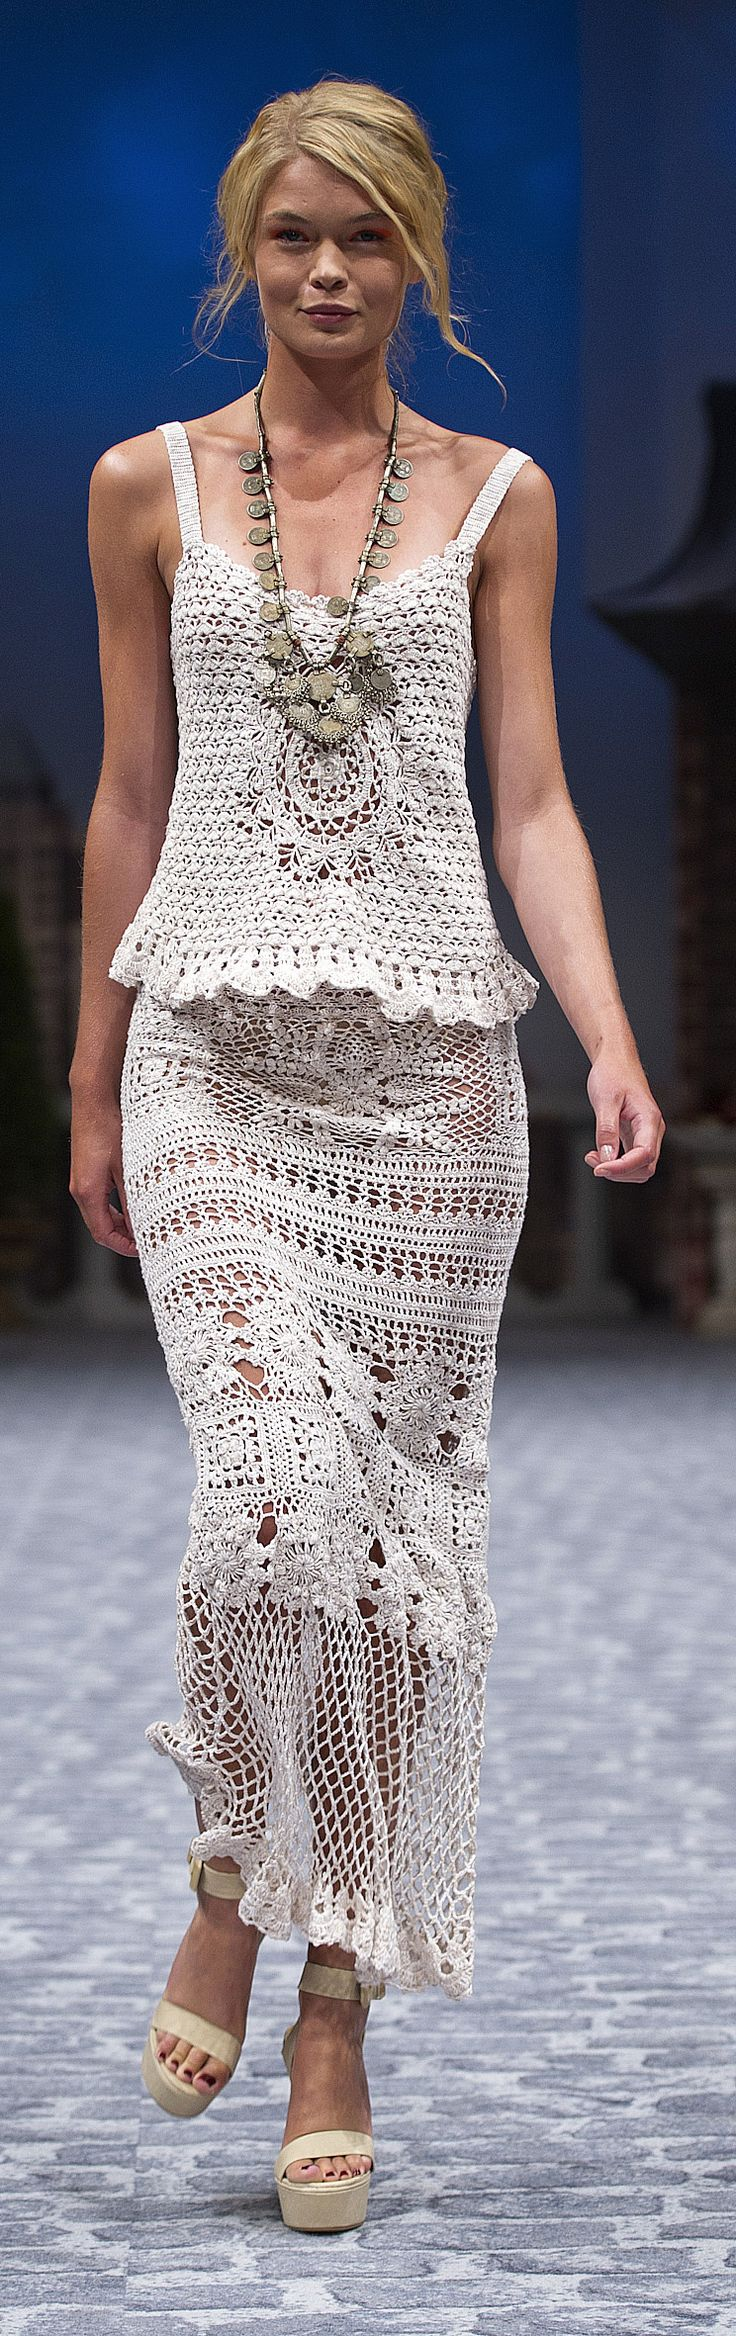 Crochet on the Runway